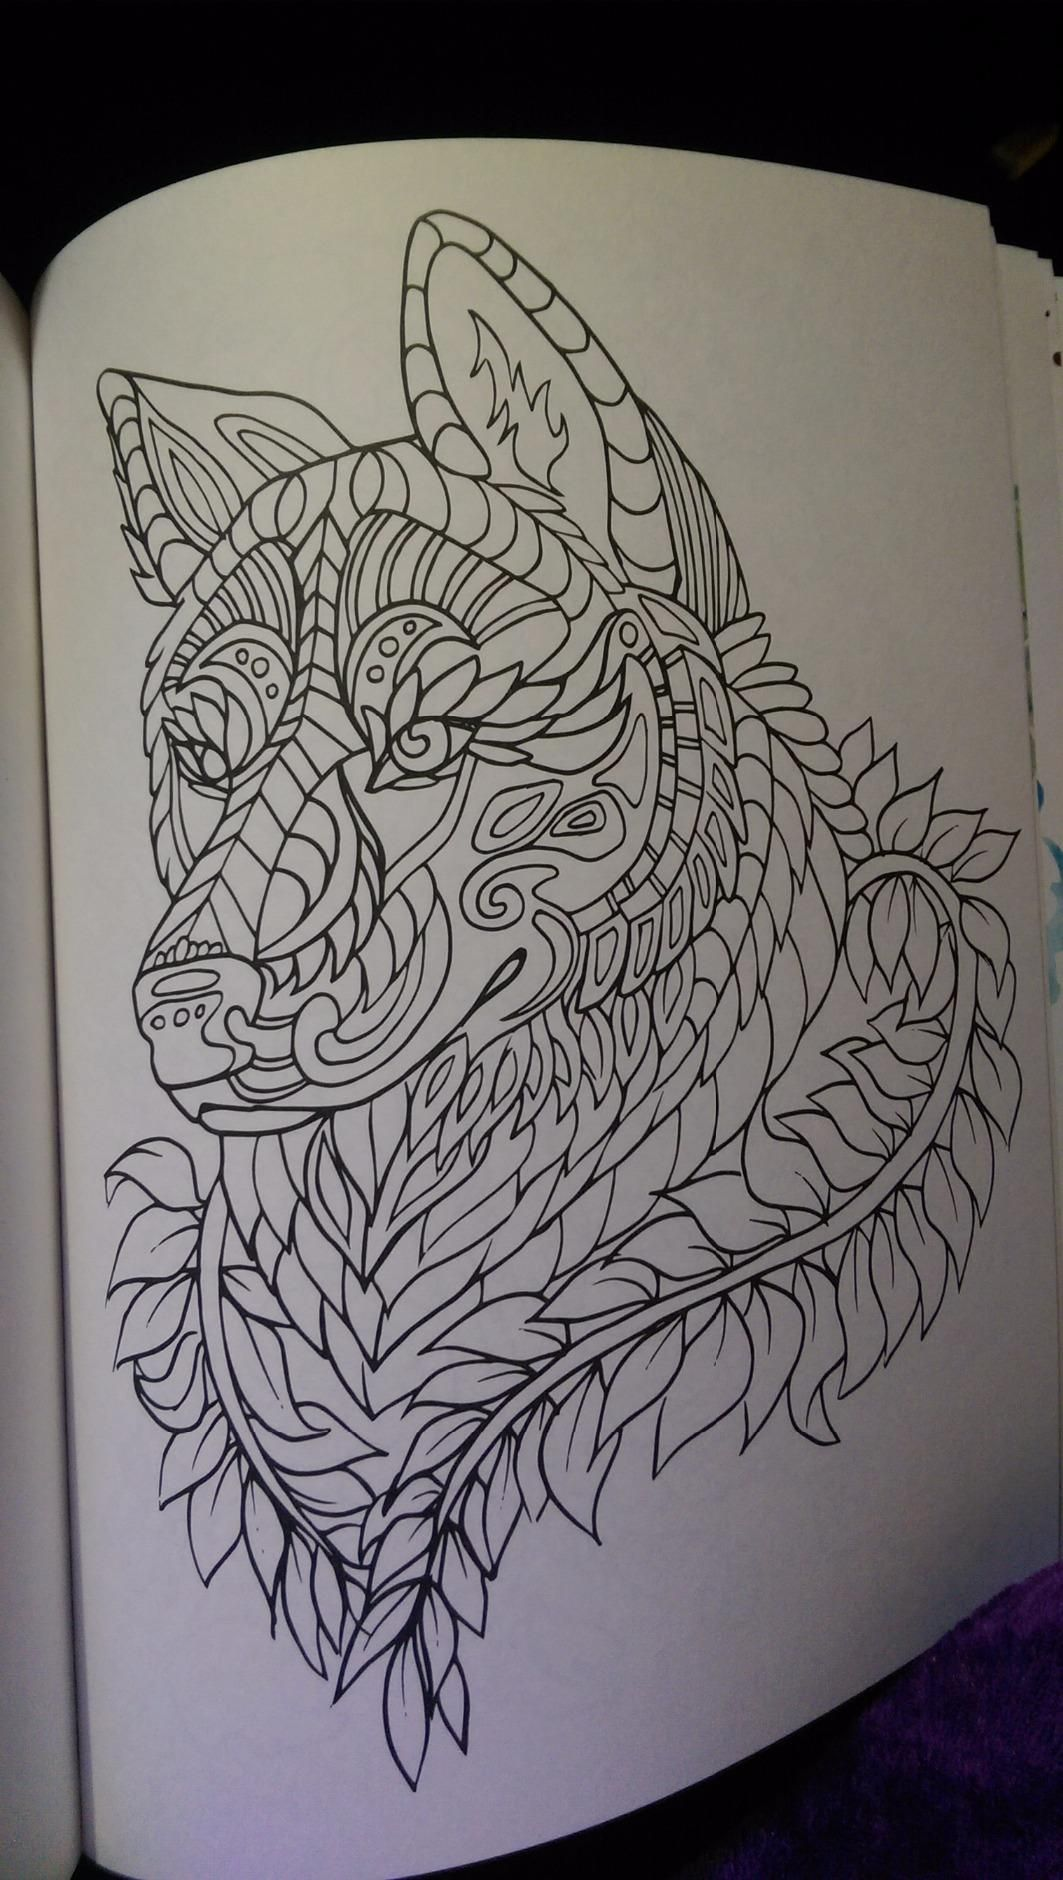 Stress relieving coloring - Amazon Com Howl Stress Relieving Adult Coloring Book Master Collection 9781944515690